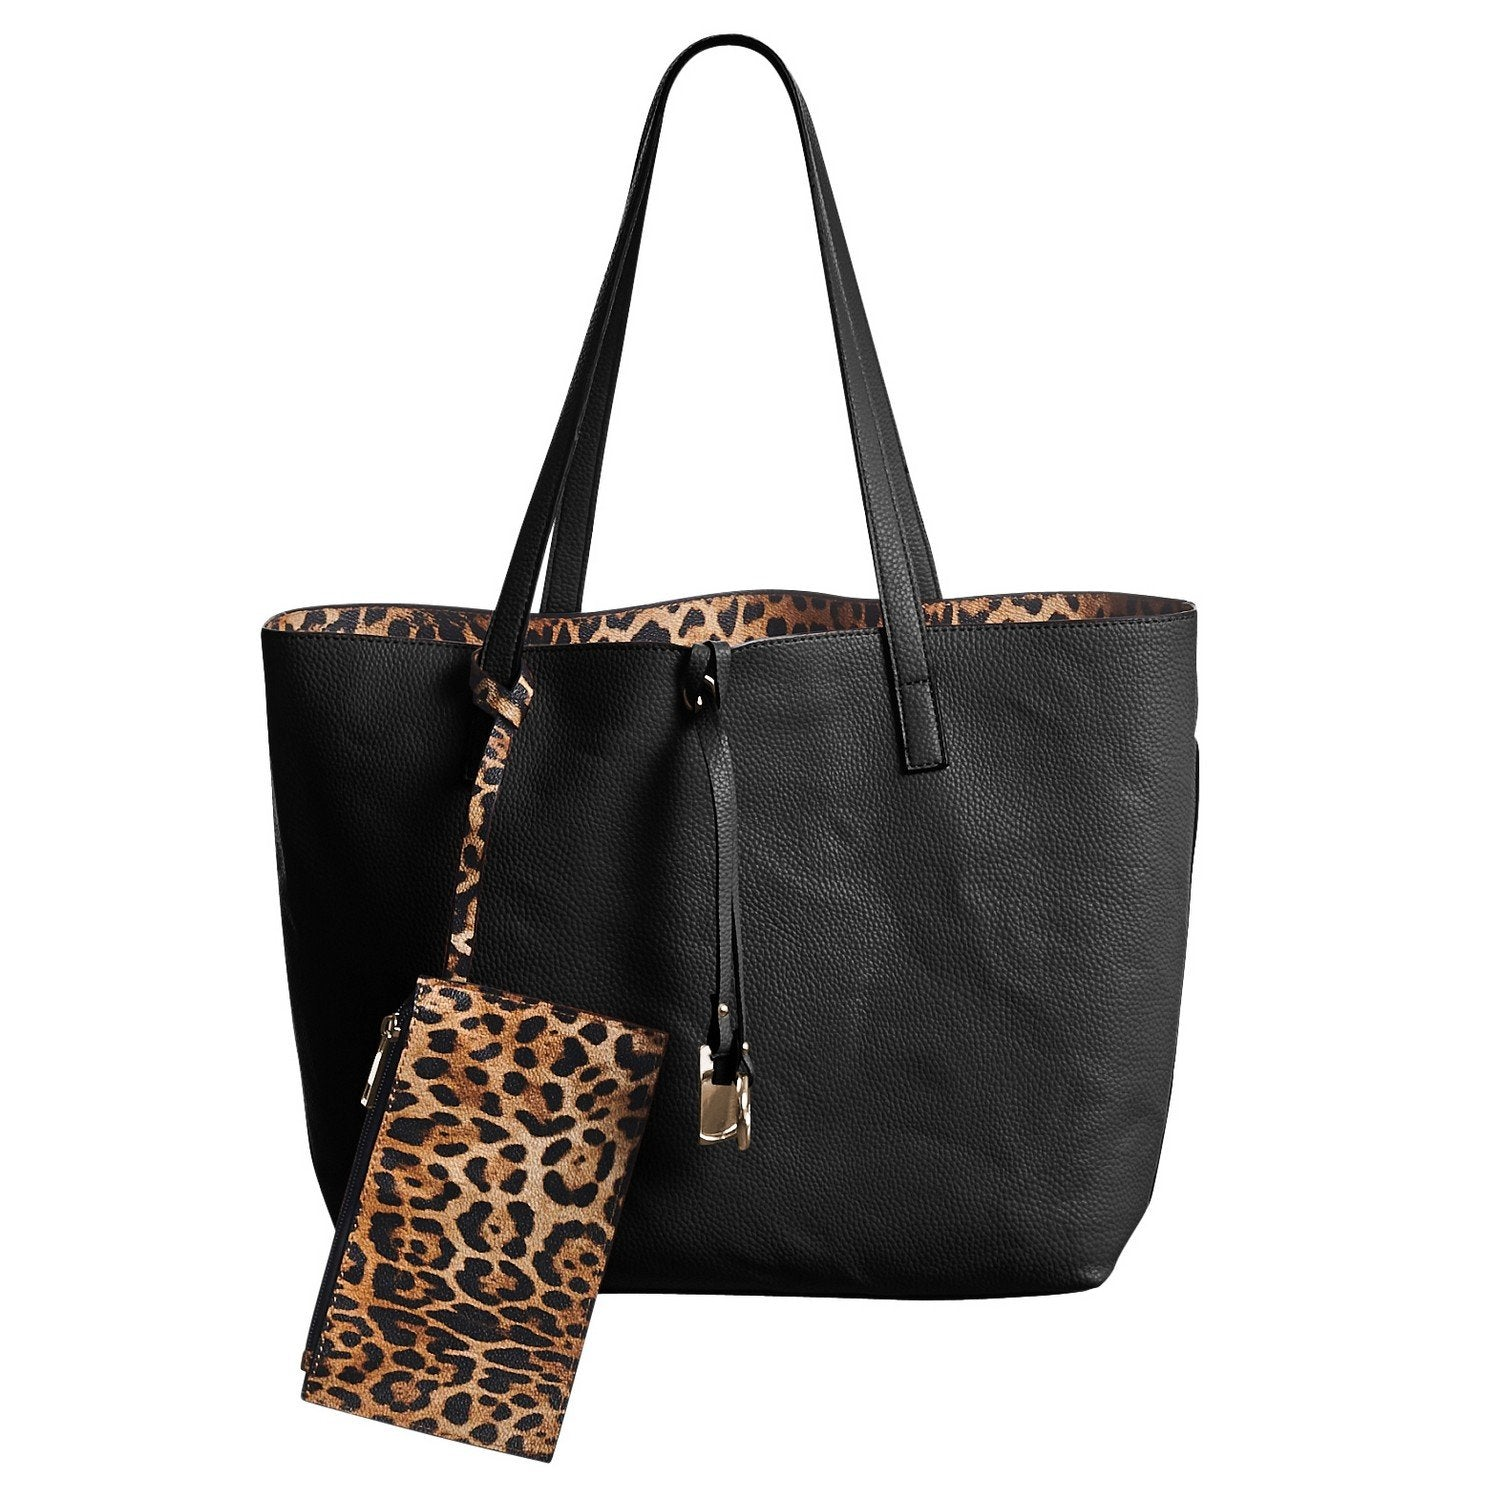 438949d80773 Valerie Reversible Leopard Tote, 3 Piece Set - Available in 2 Styles!